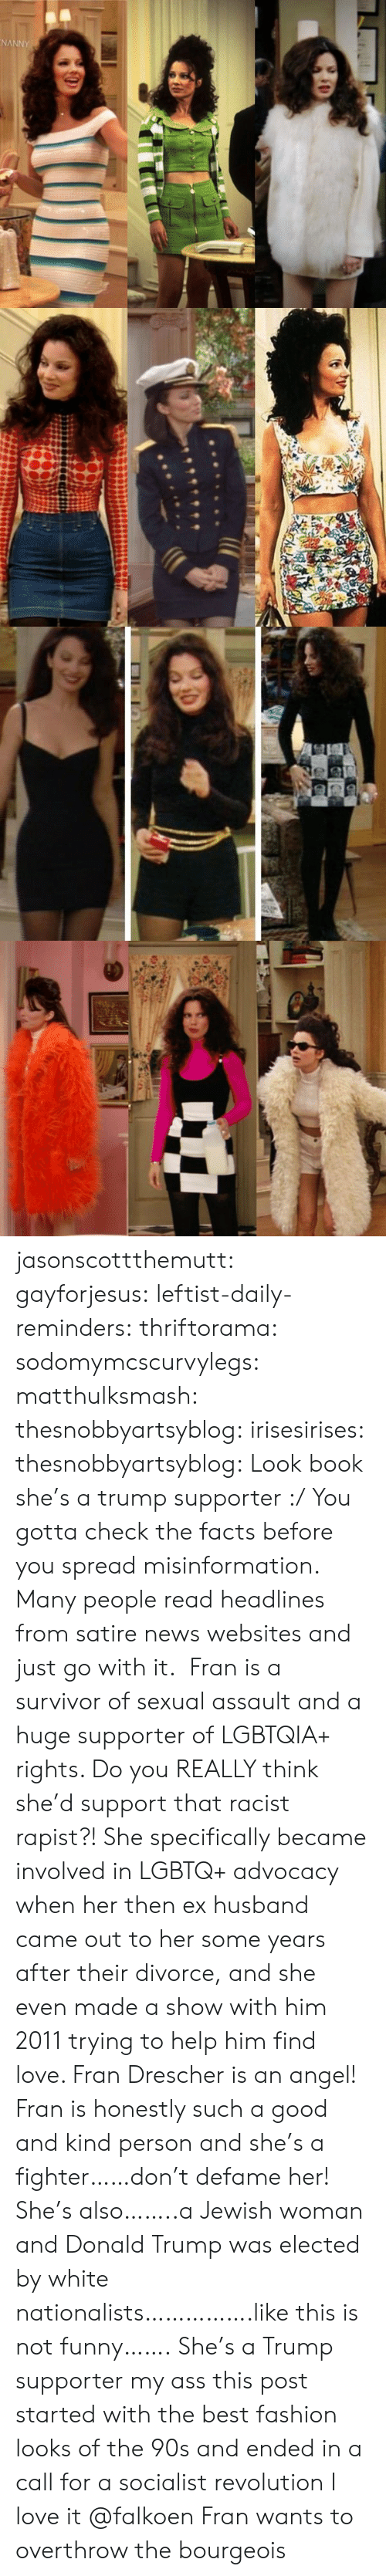 Angeler: jasonscottthemutt:  gayforjesus:  leftist-daily-reminders:  thriftorama:  sodomymcscurvylegs:  matthulksmash:   thesnobbyartsyblog:  irisesirises:  thesnobbyartsyblog: Look book she's a trump supporter :/  You gotta check the facts before you spread misinformation. Many people read headlines from satire news websites and just go with it.  Fran is a survivor of sexual assault and a huge supporter of LGBTQIA+ rights. Do you REALLY think she'd support that racist rapist?!   She specifically became involved in LGBTQ+ advocacy when her then ex husband came out to her some years after their divorce, and she even made a show with him 2011 trying to help him find love. Fran Drescher is an angel!  Fran is honestly such a good and kind person and she's a fighter……don't defame her! She's also……..a Jewish woman and Donald Trump was elected by white nationalists…………….like this is not funny…….  She's a Trump supporter my ass  this post started with the best fashion looks of the 90s and ended in a call for a socialist revolution I love it  @falkoen Fran wants to overthrow the bourgeois